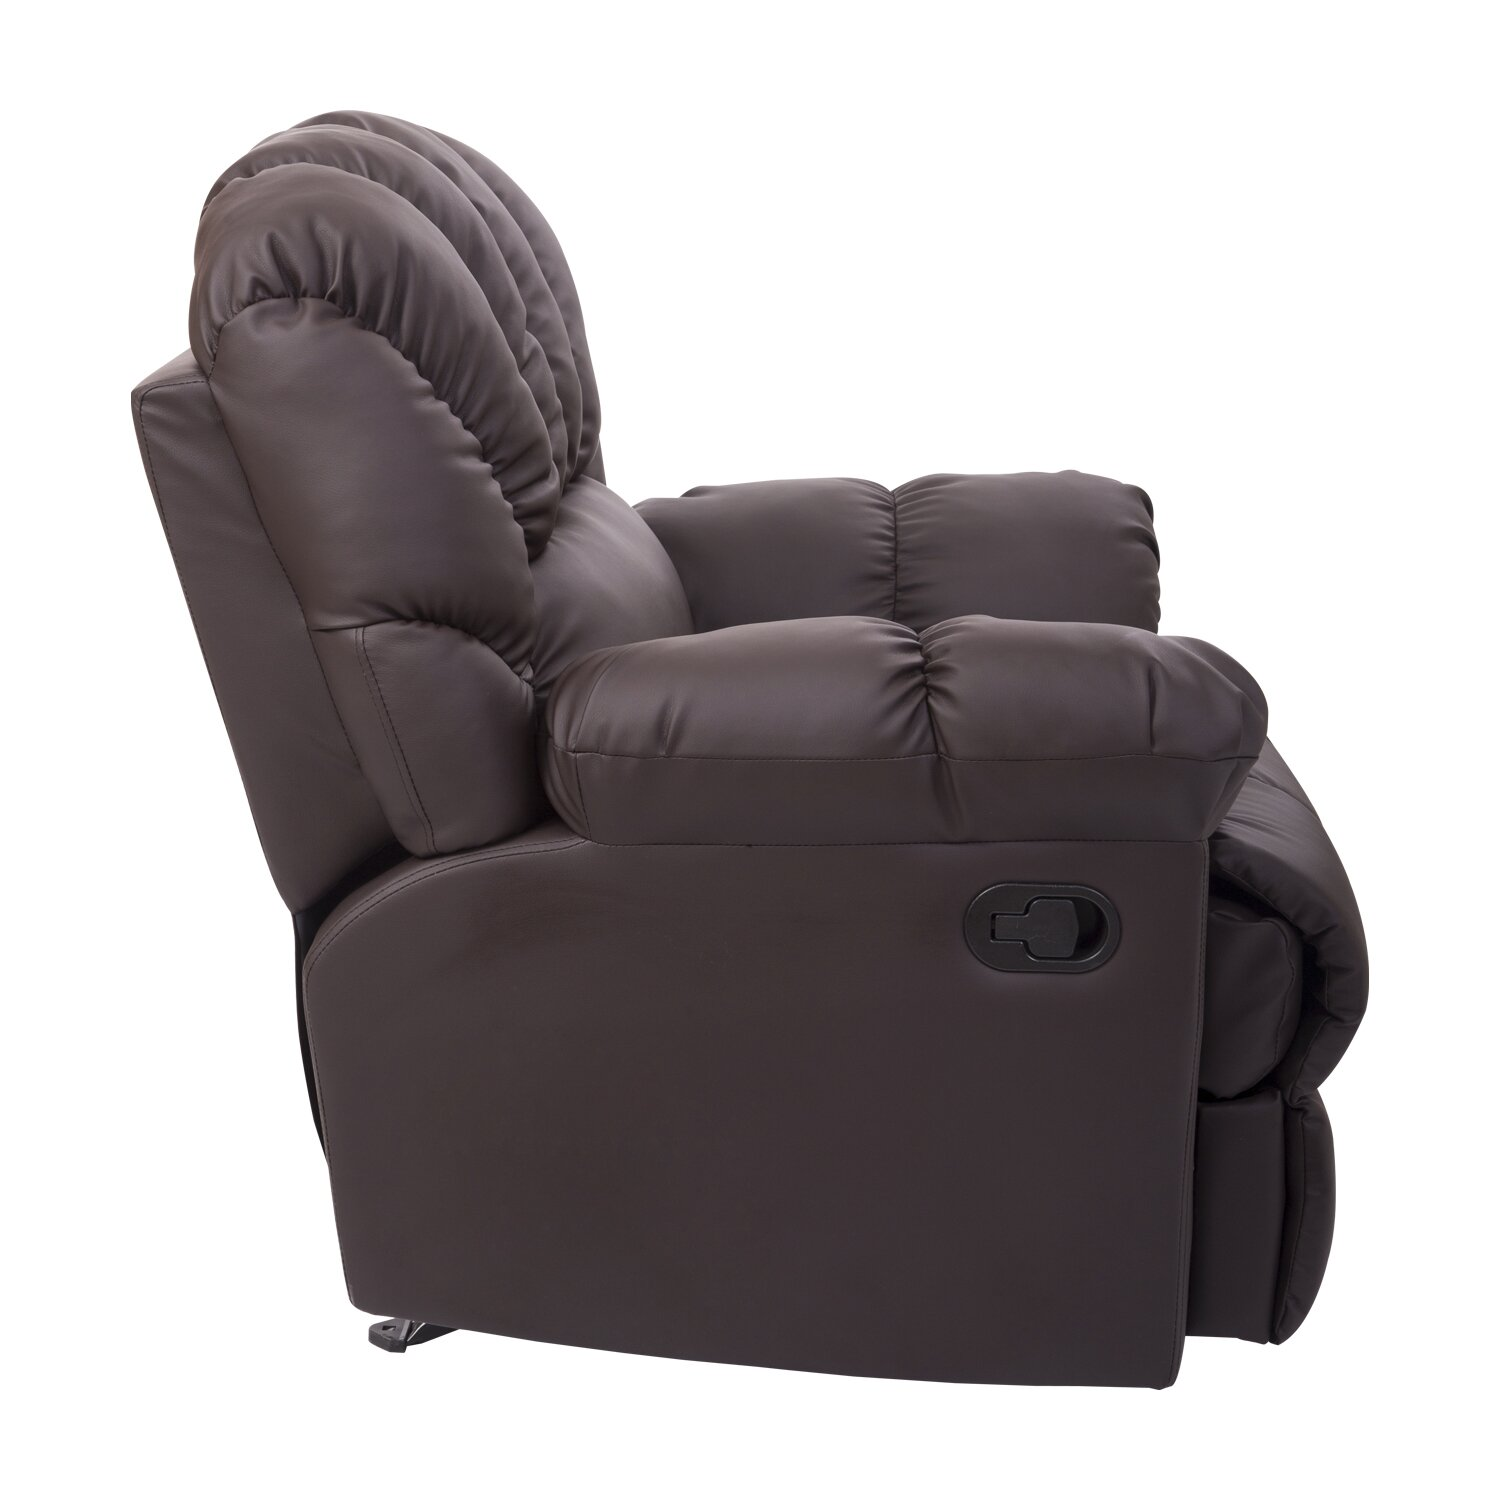 Homcom rocking sofa recliner reviews wayfair Rocking loveseats